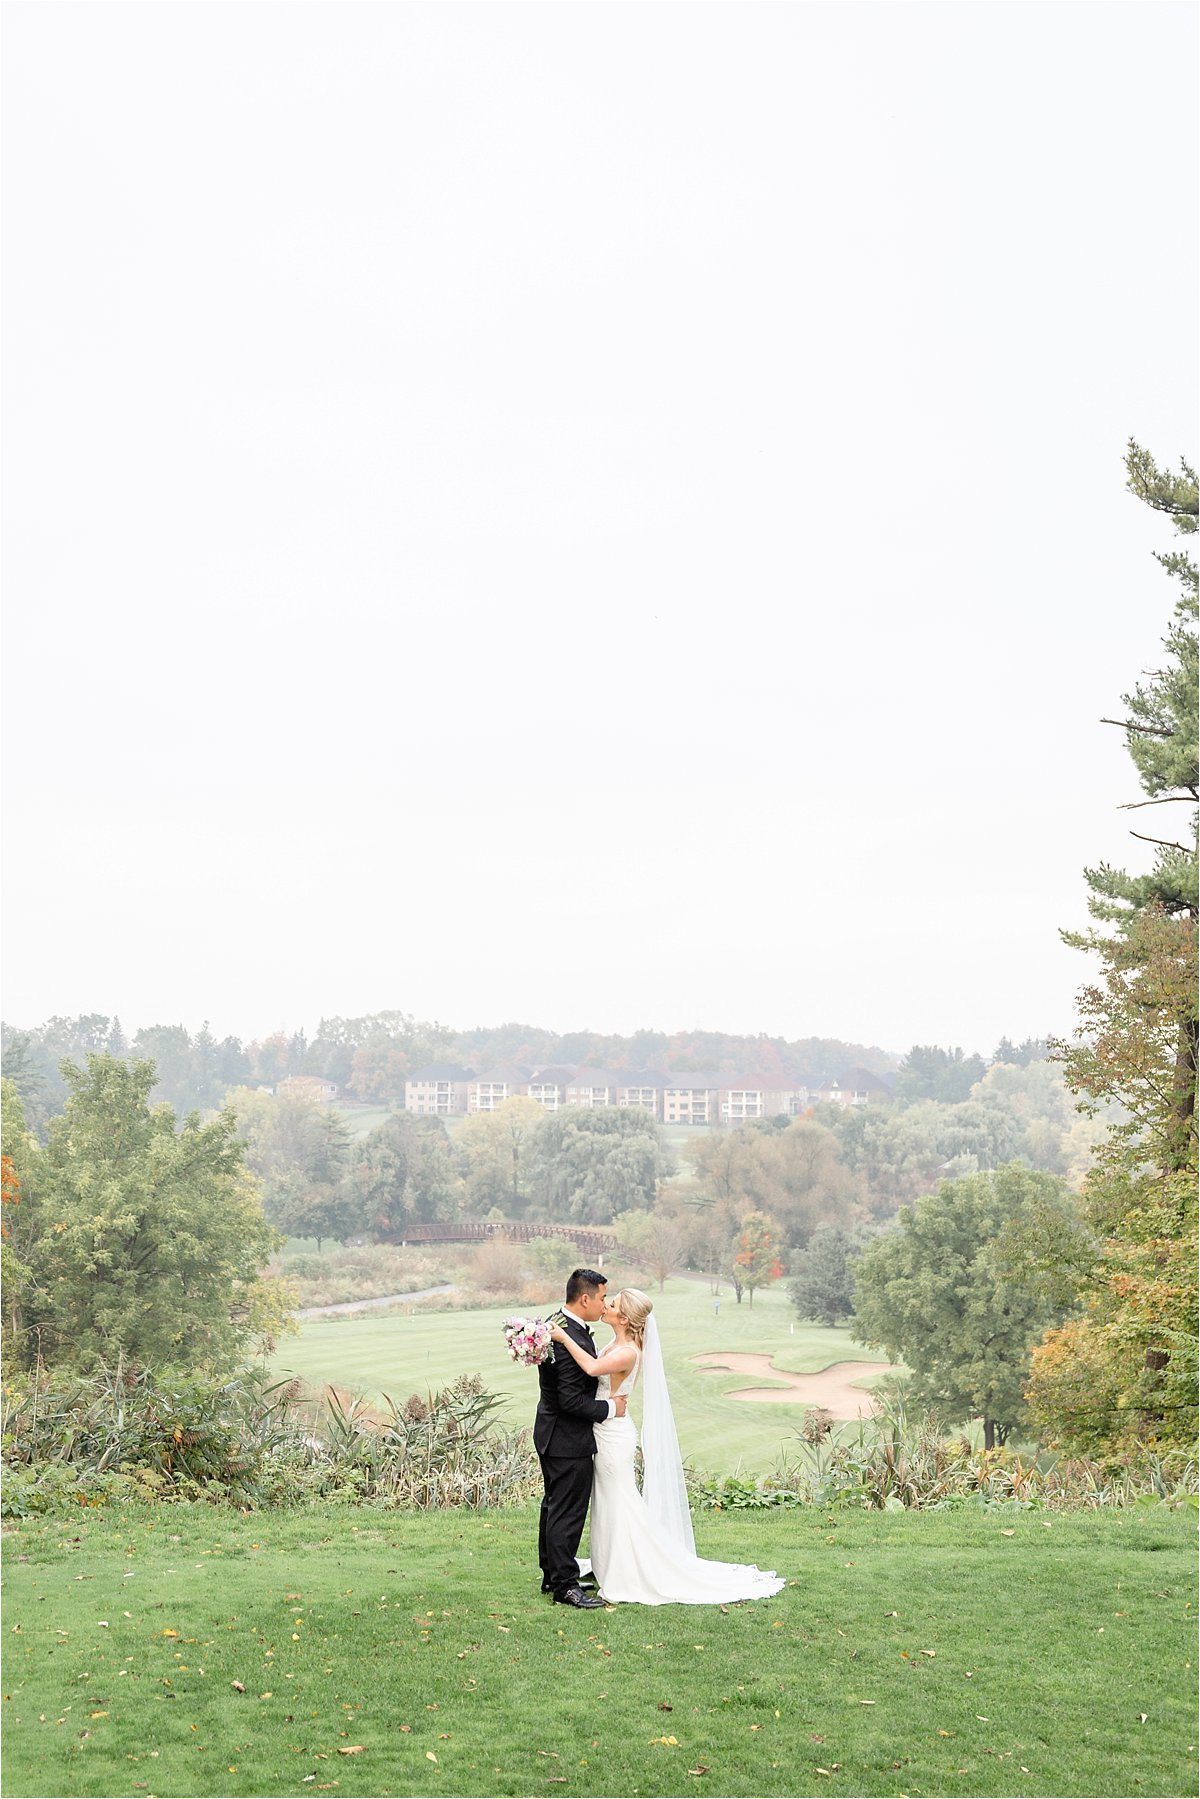 Mairead & Eddy Wedding Blog | London Ontario Wedding Photography- Dylan Martin Photography | 81